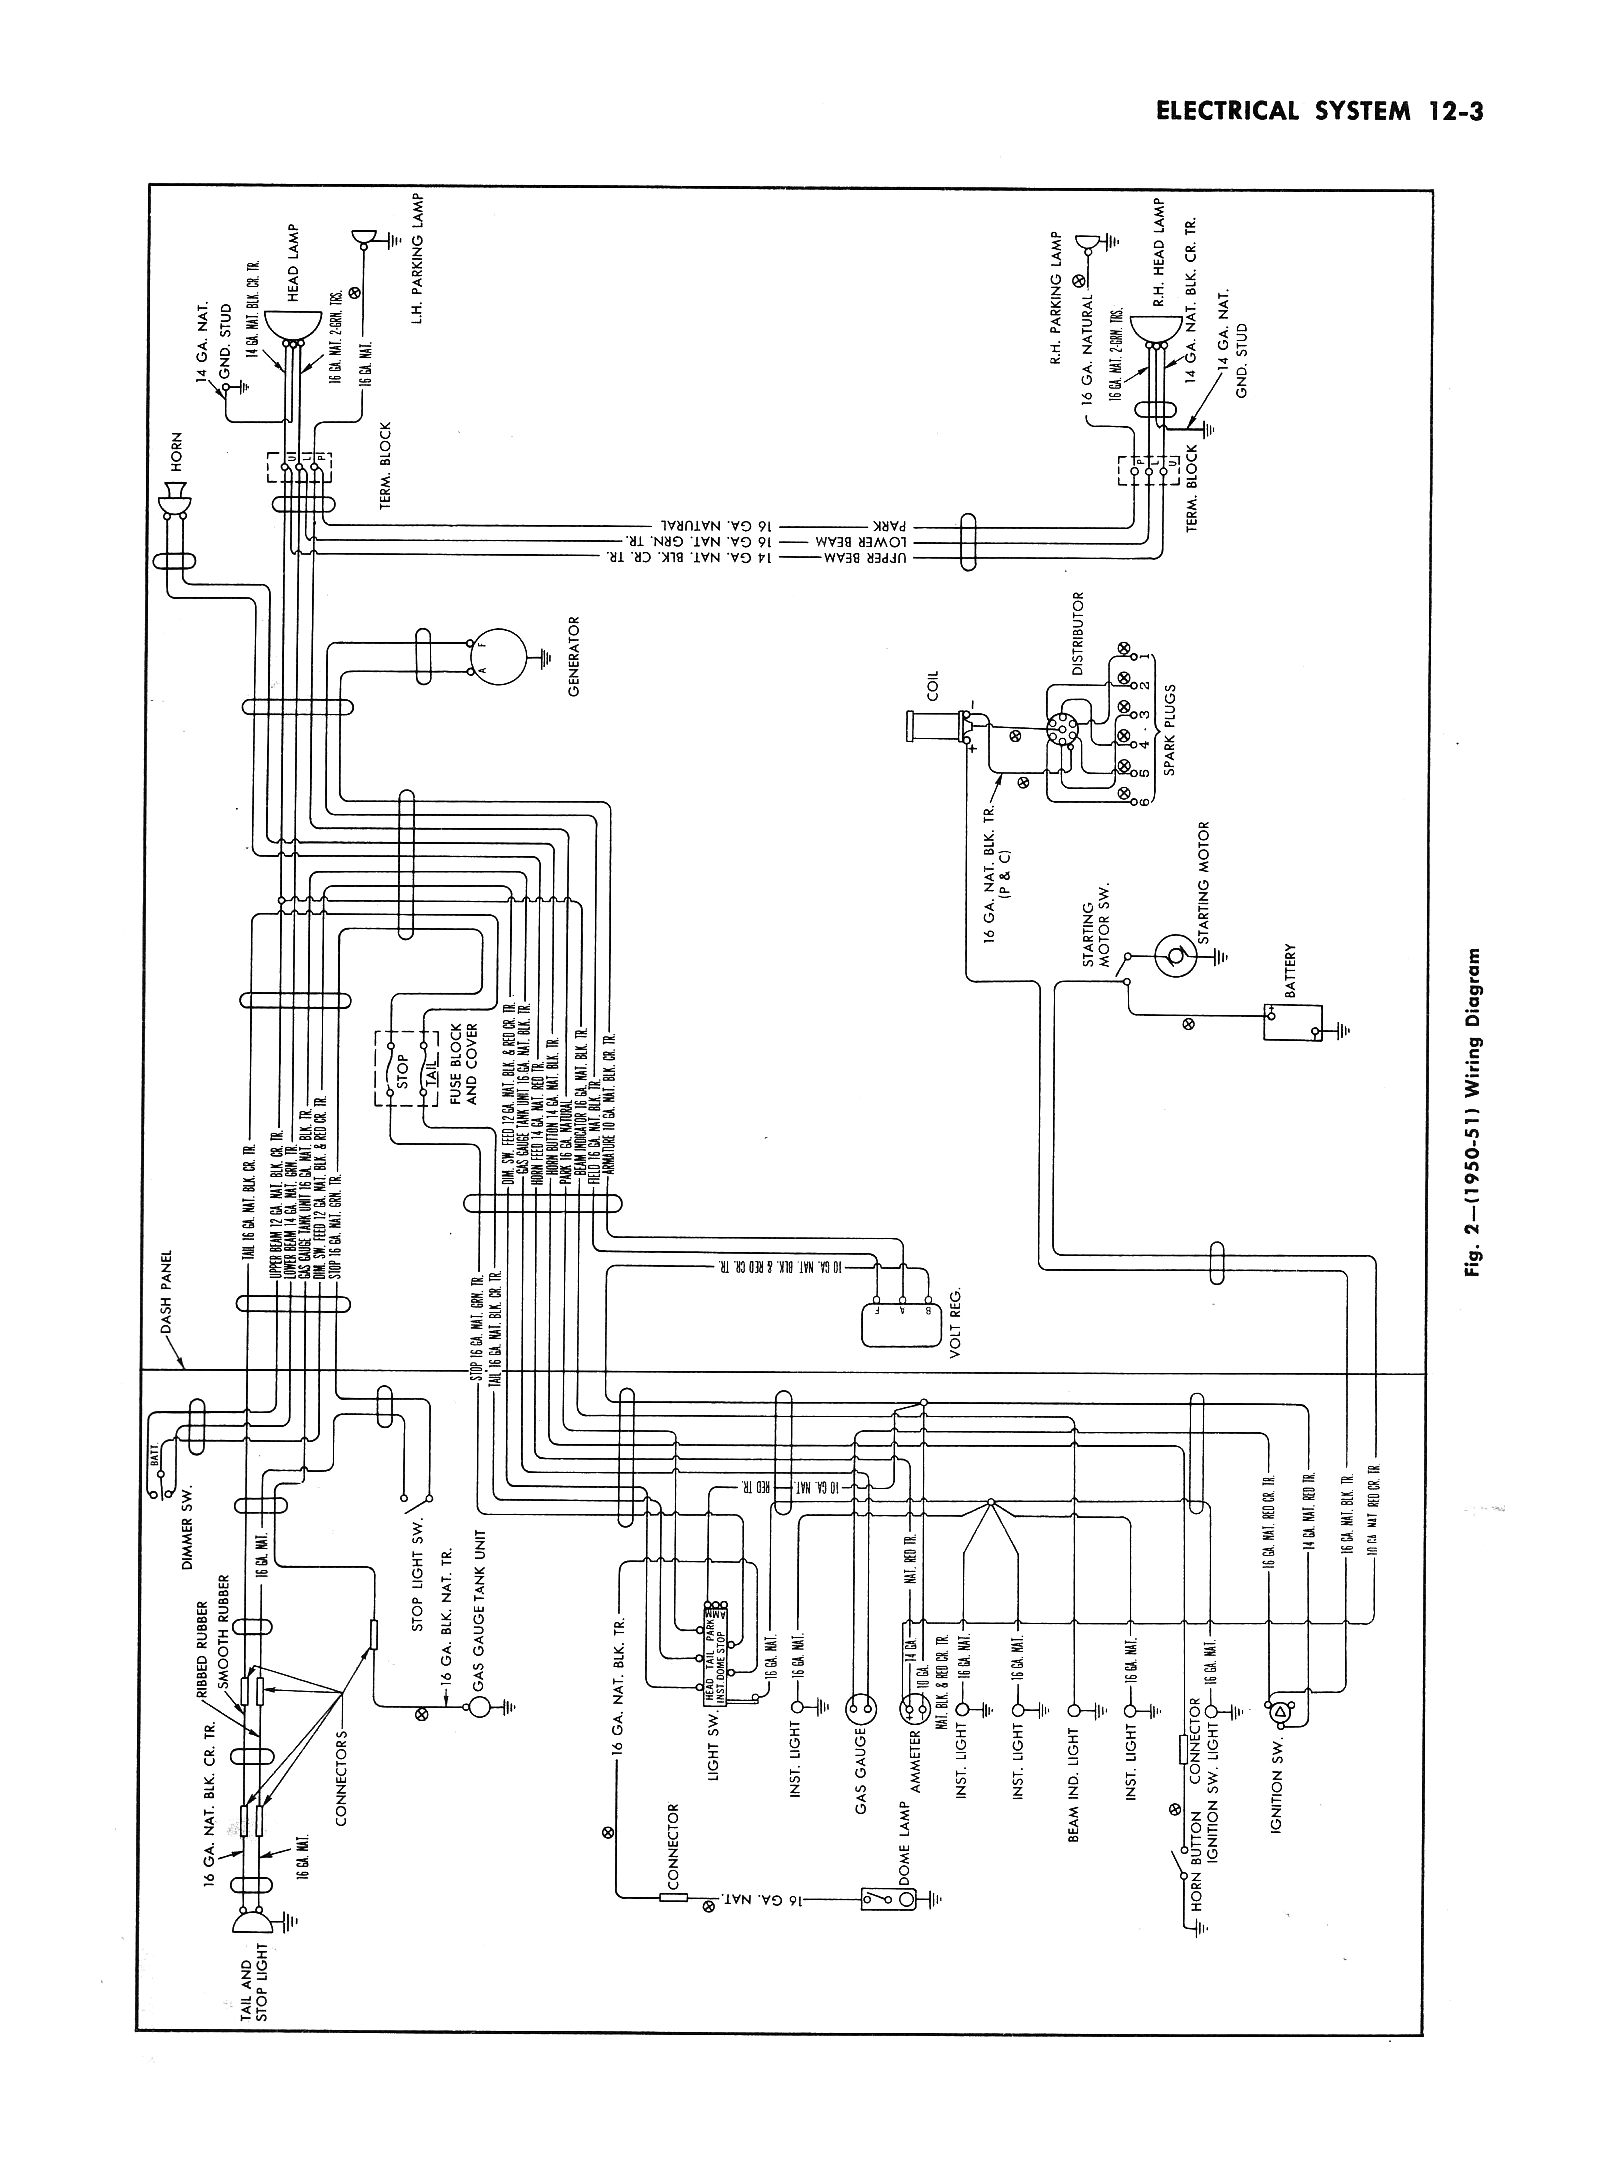 51ctsm1203 chevy wiring diagrams